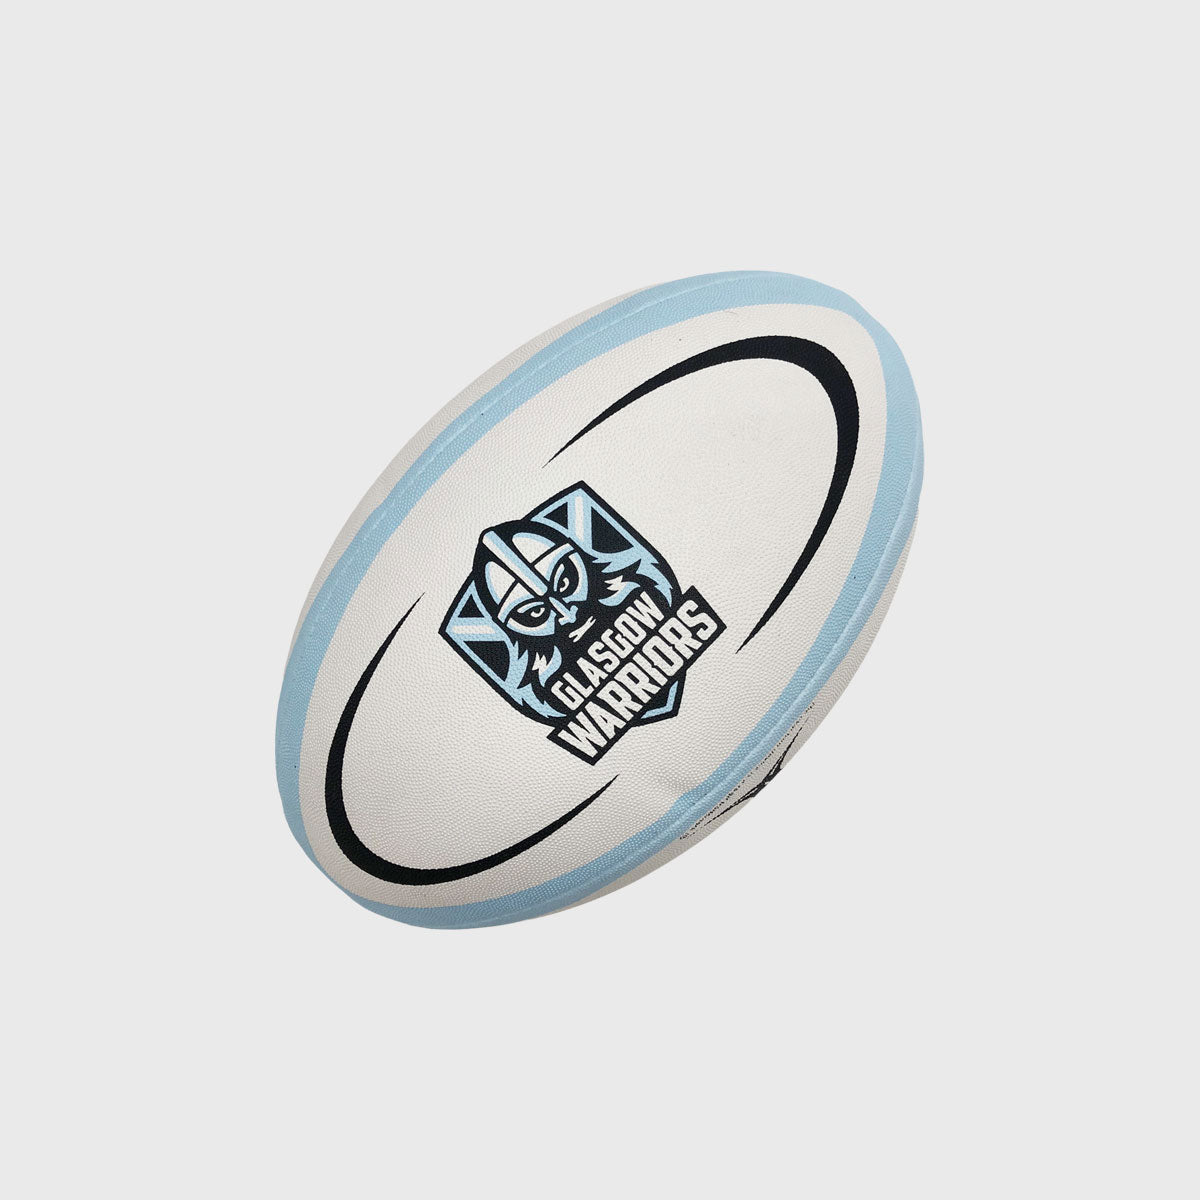 Glasgow Warriors Replica Mini Rugby Ball 2019/20